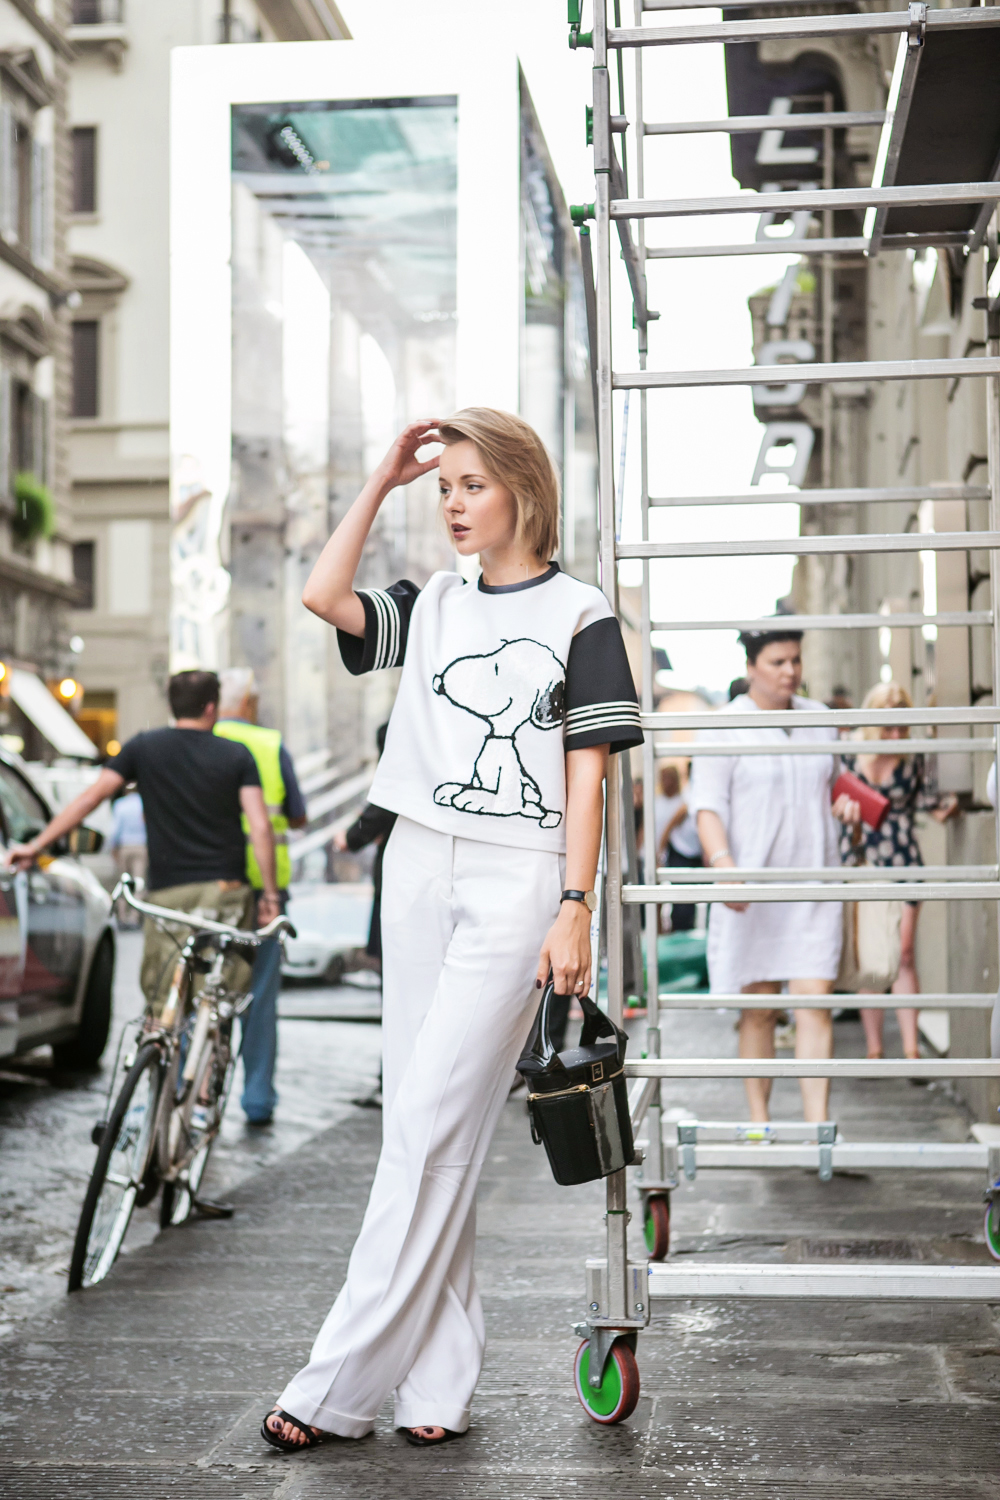 darya kamalova from thecablook in florence with luisaviaroma firenze4ever stylelab wearing fay total look snoopy-16